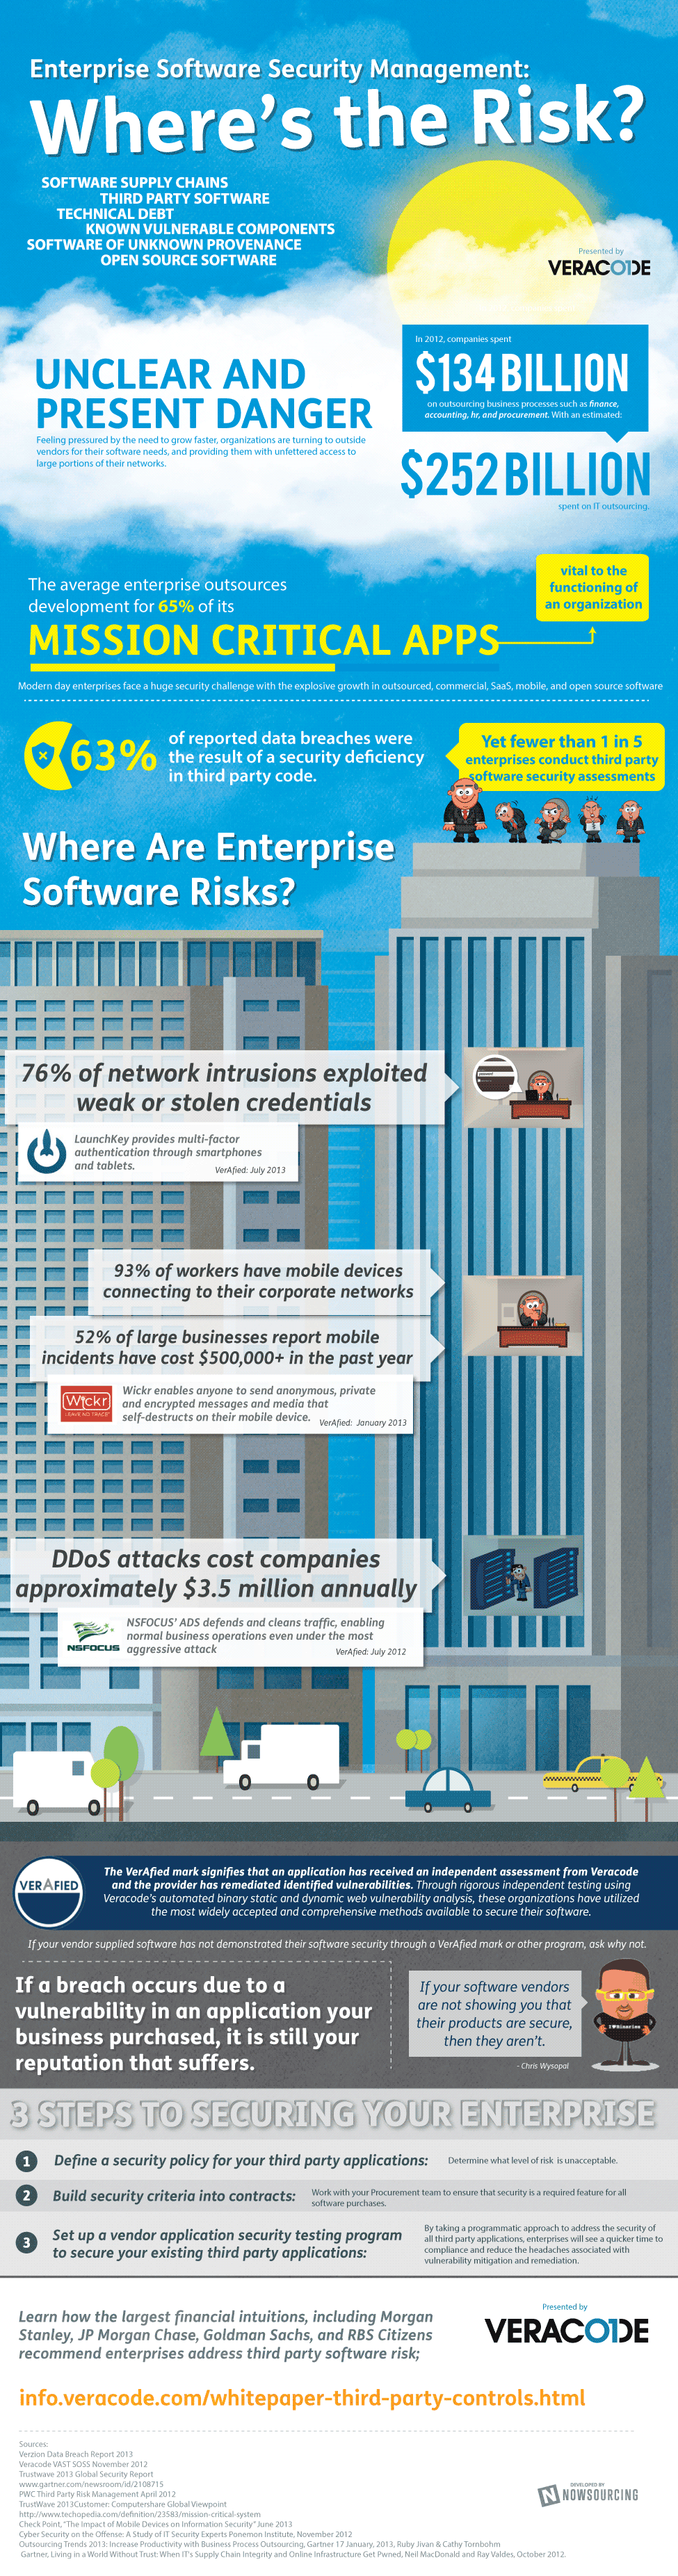 Enterprise Software Security: Where's the Risk?